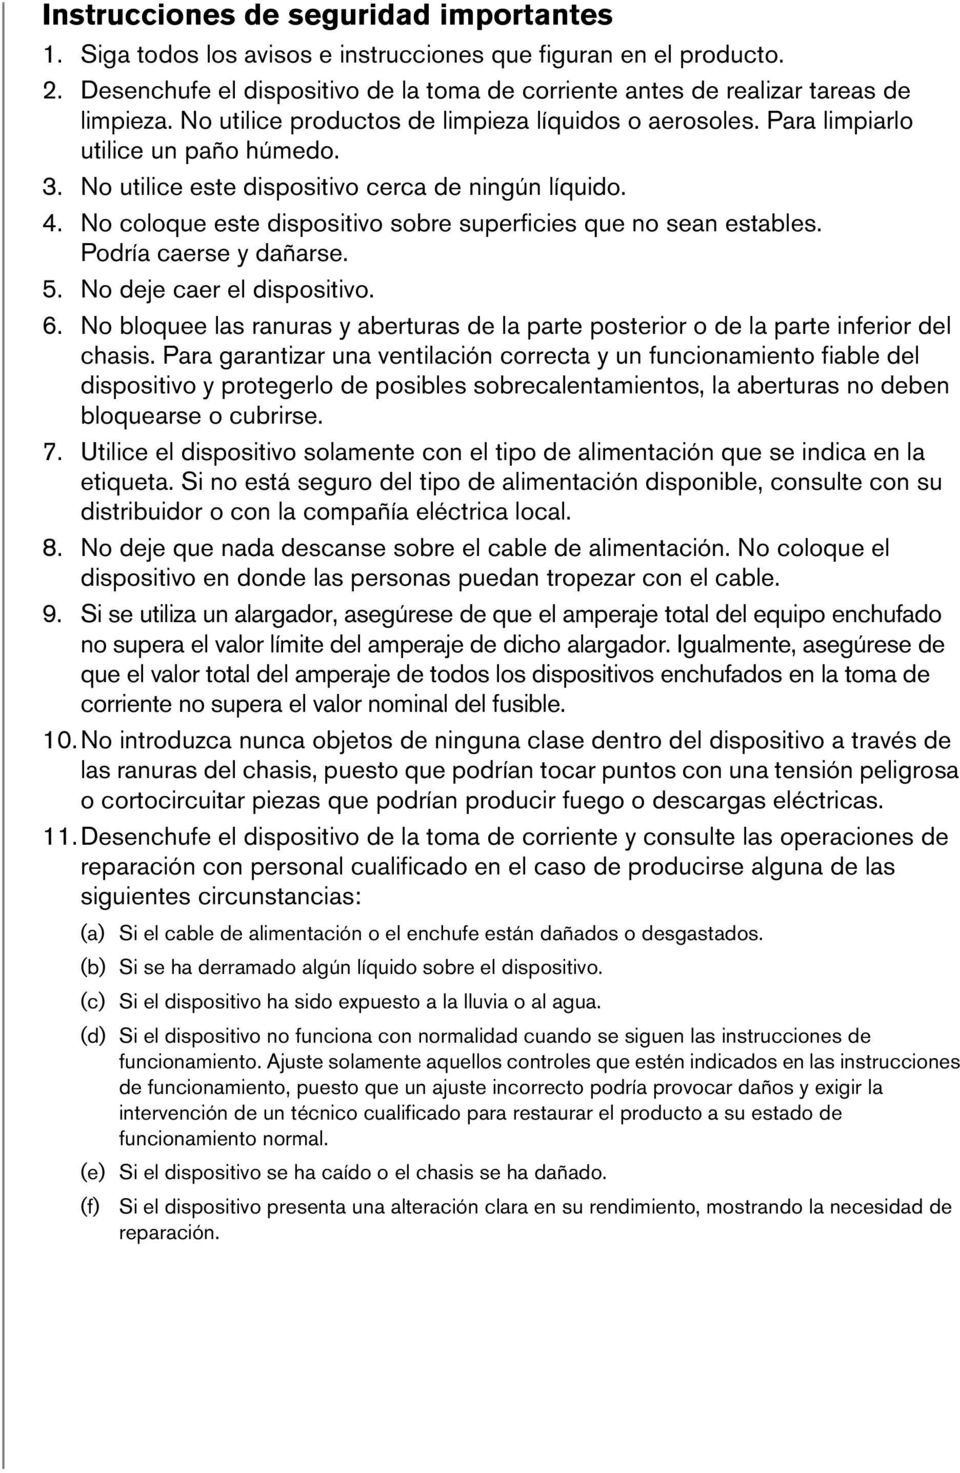 No coloque este dispositivo sobre superficies que no sean estables. Podría caerse y dañarse. 5. No deje caer el dispositivo. 6.